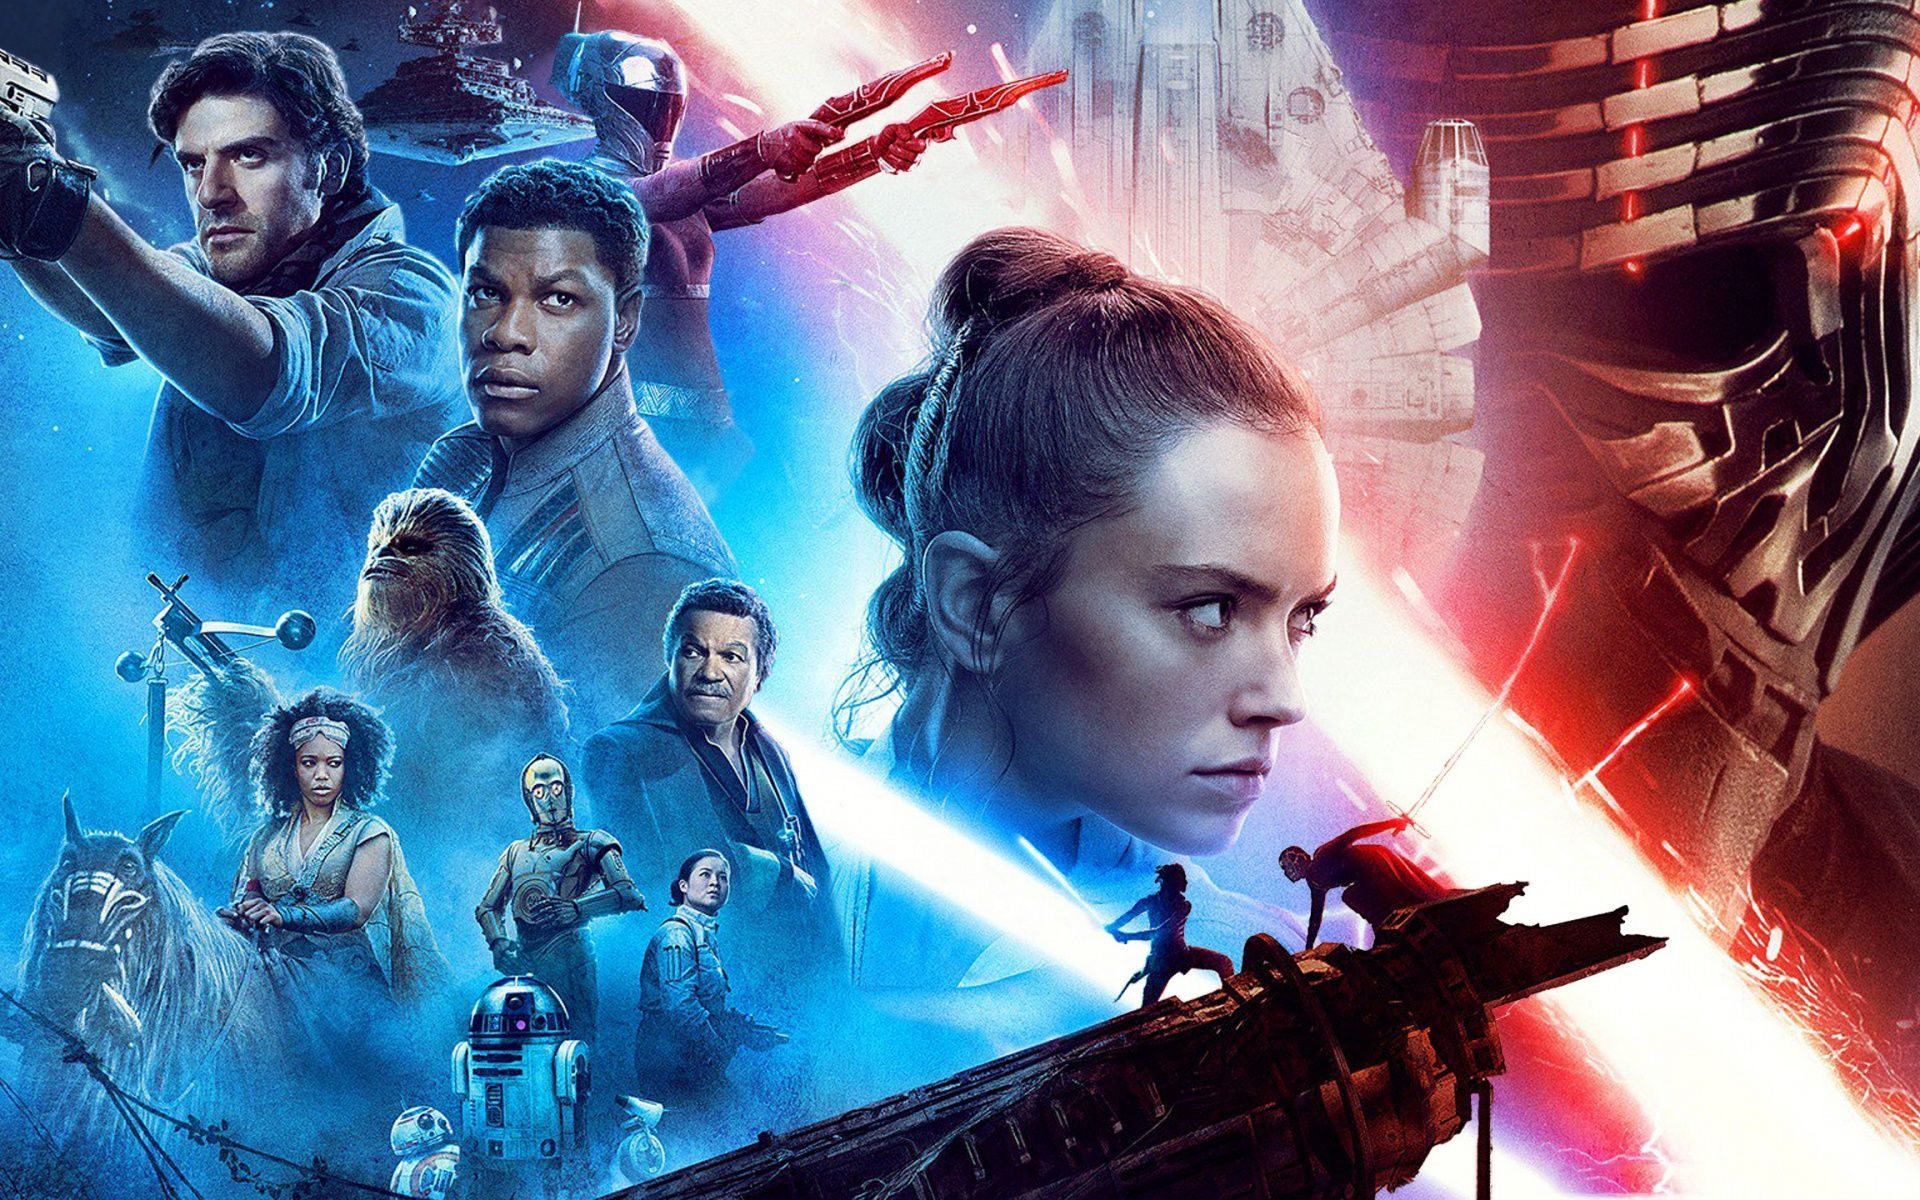 50 Movie Wallpapers Ideas In 2020 Movie Wallpapers Background Images Wallpapers Star Wars Wallpaper